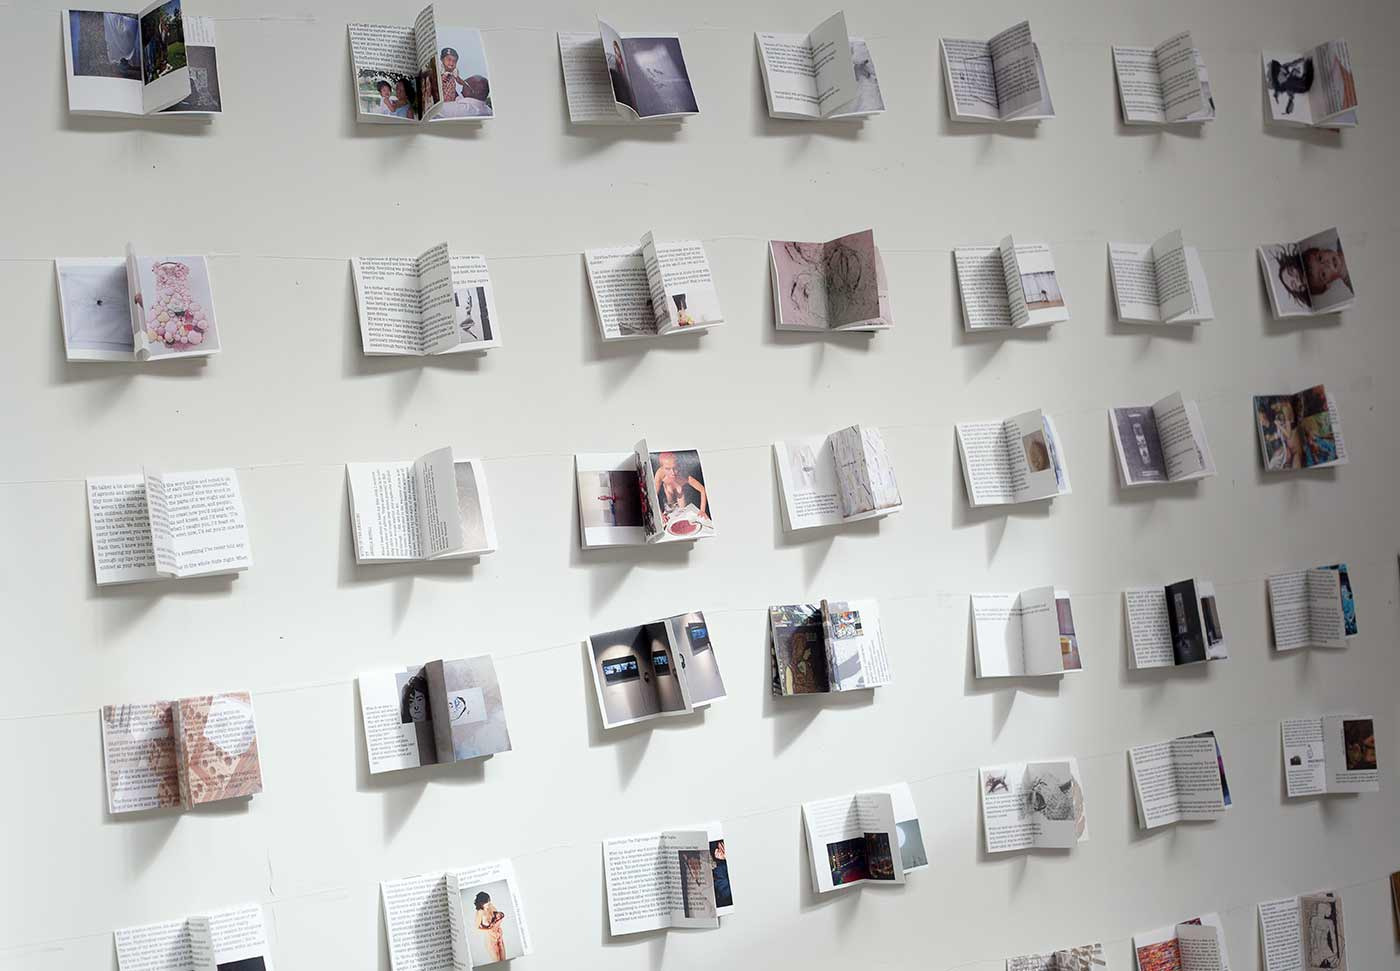 Ə-Books #1: Lara Gonzalez, Made and Published [Procreate Project], Exhibition view, Ə /Uh/-Books Project Space For Material Publishing, London